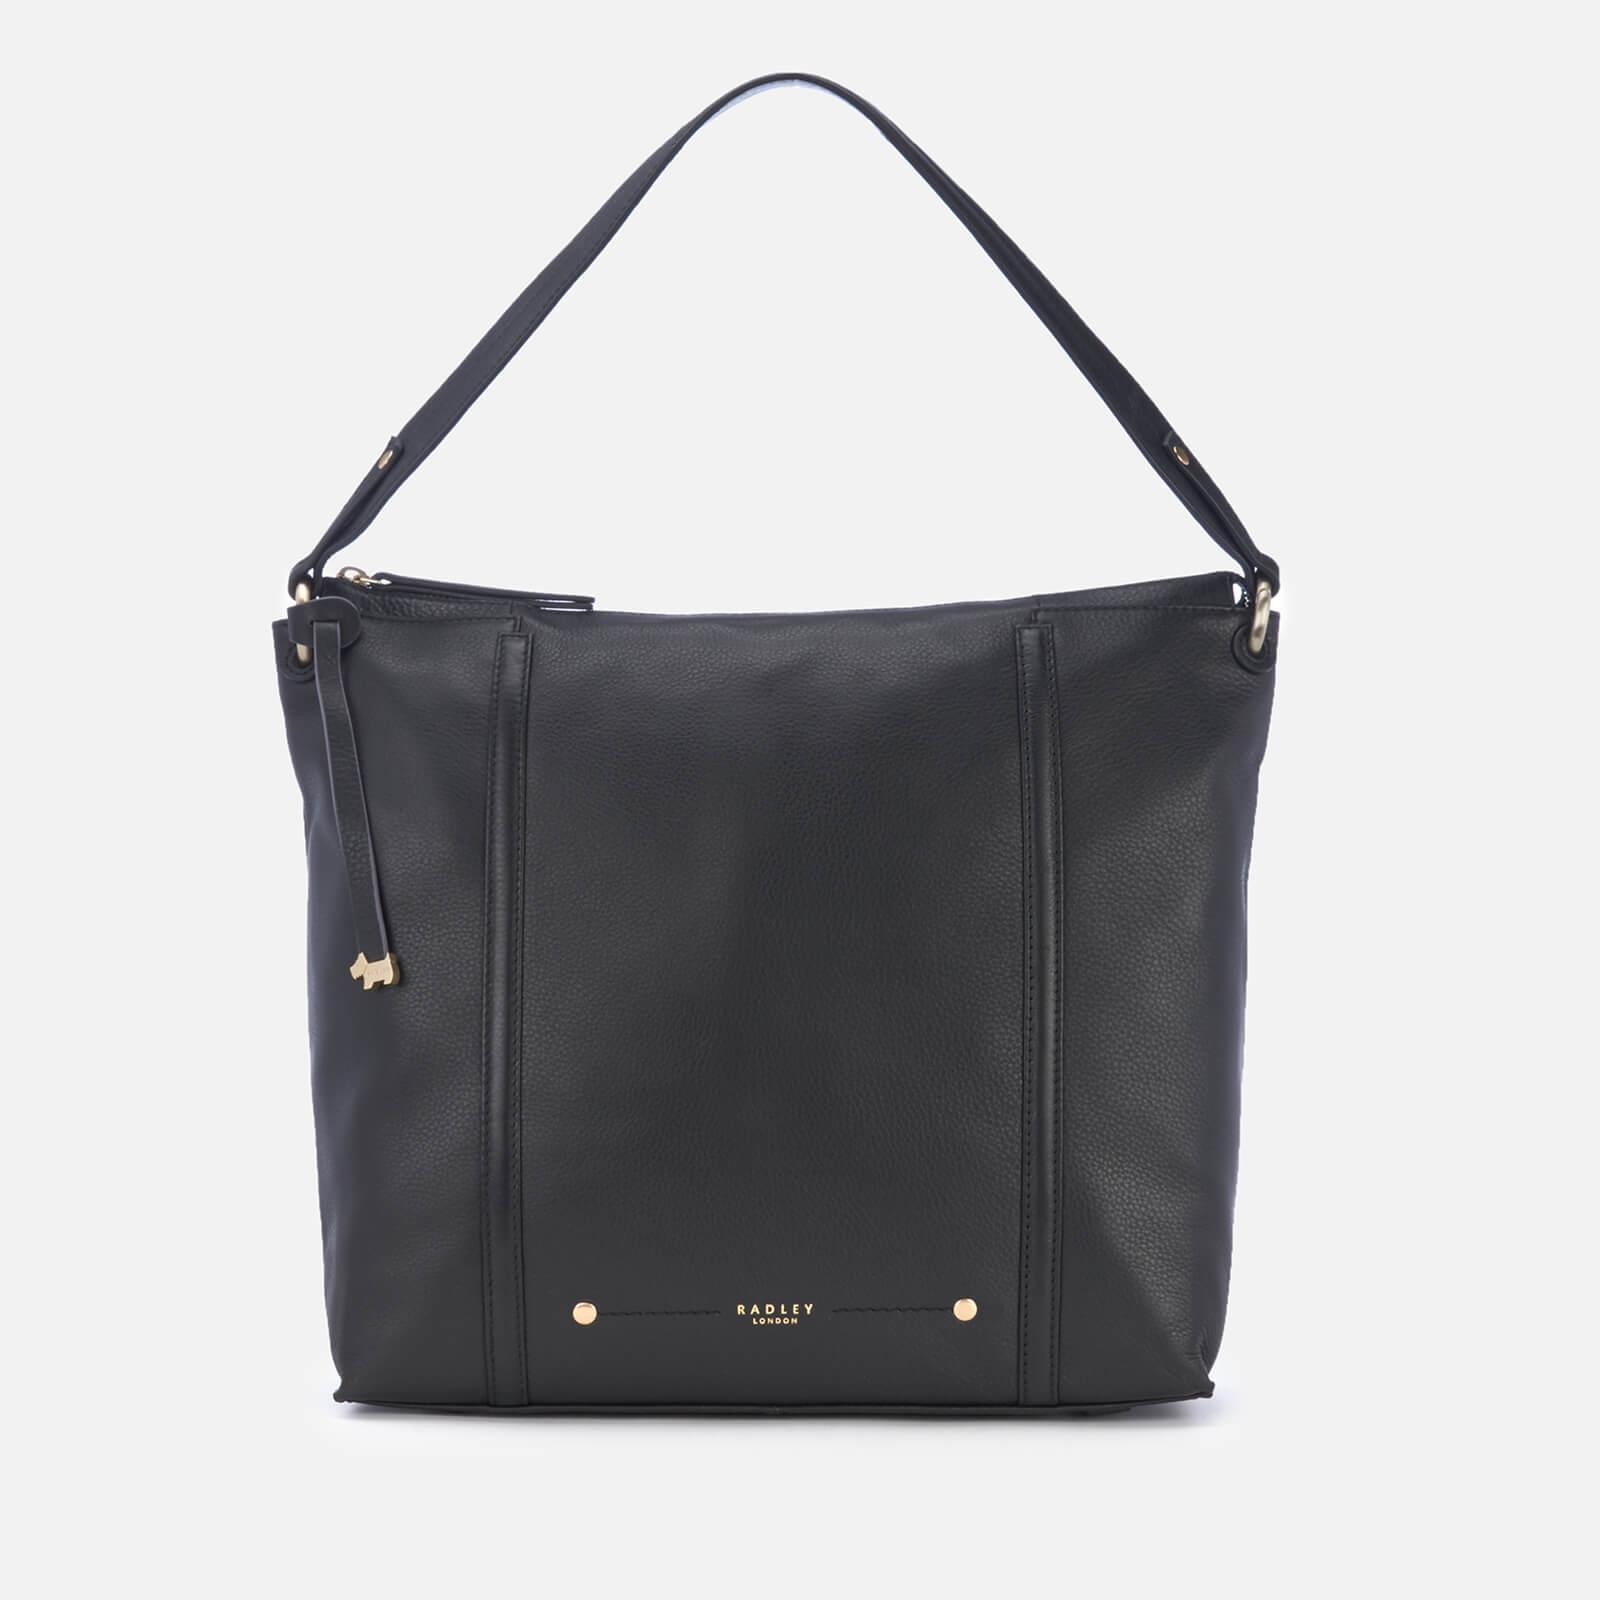 669a67473a1a Radley Kew Palace Large Hobo Zip Top Bag in Black - Save 30% - Lyst